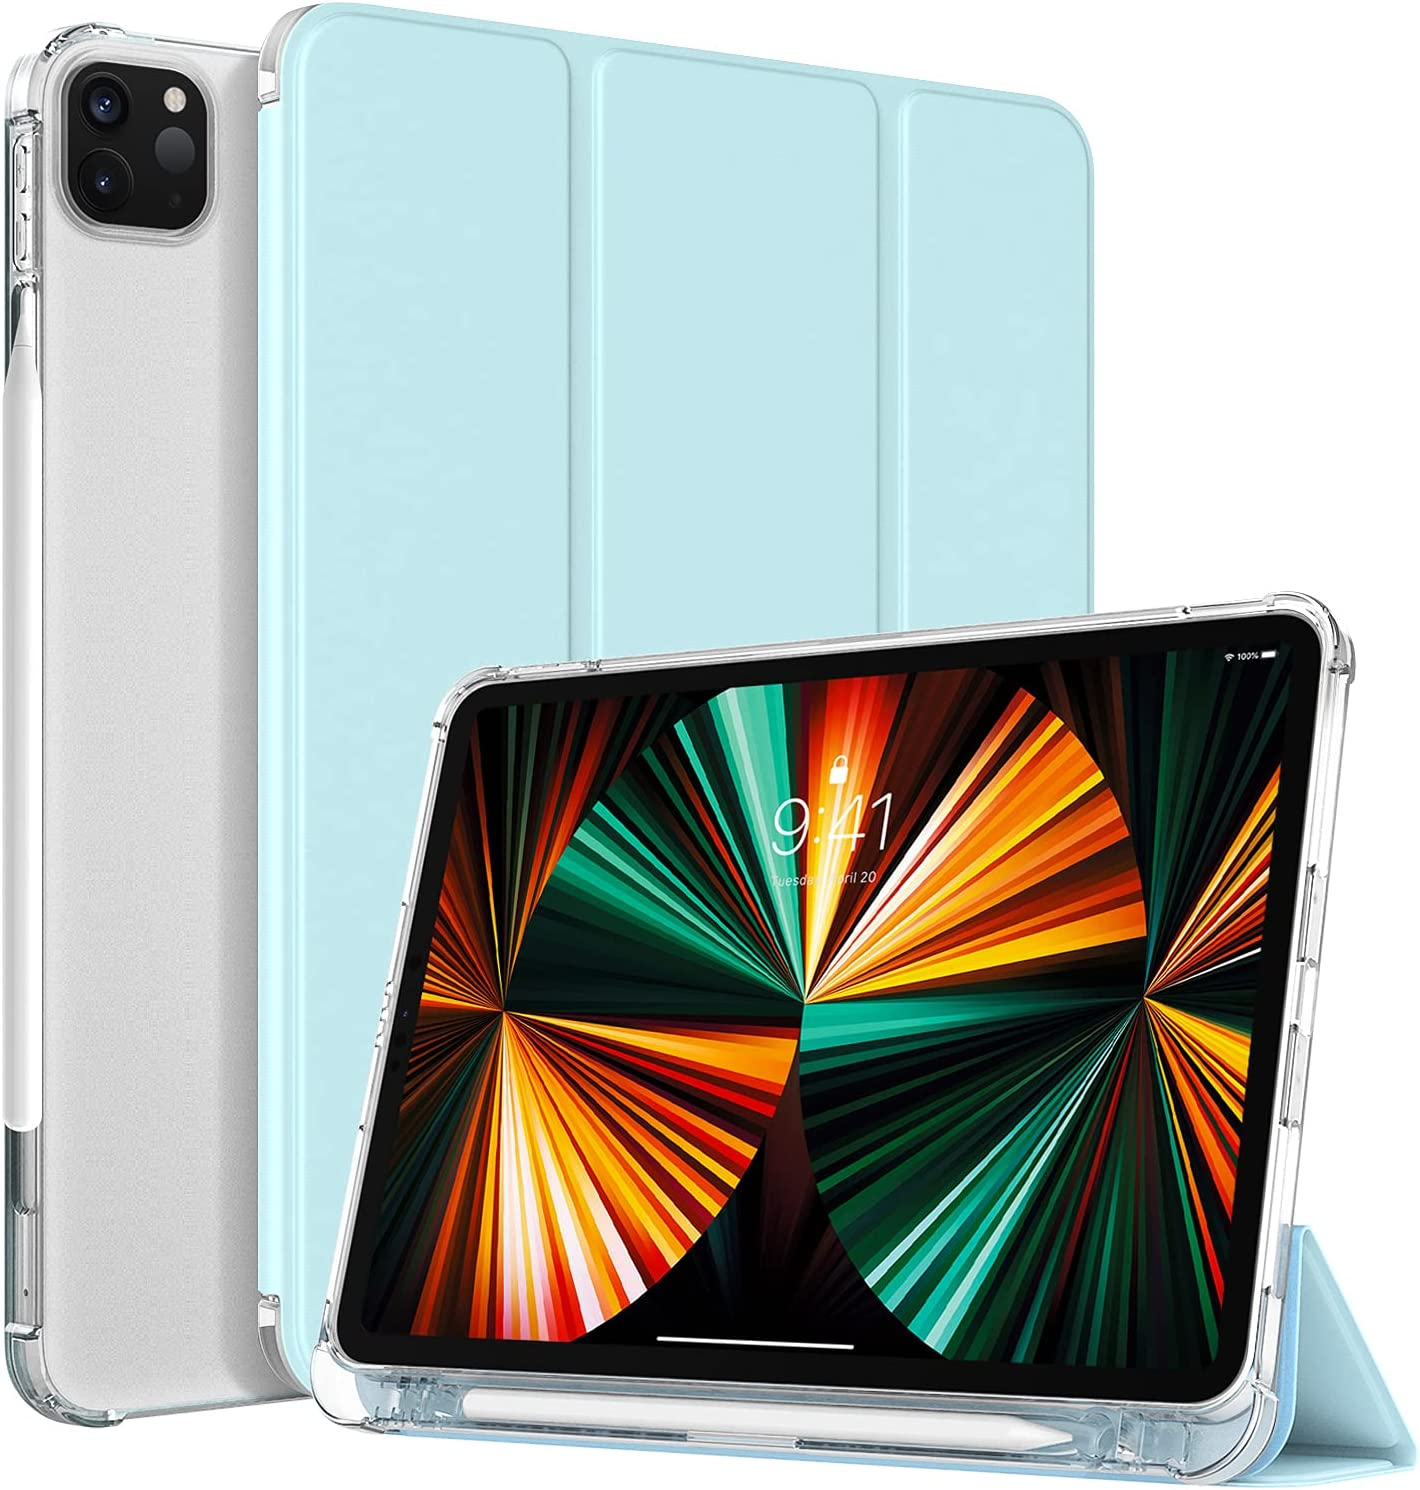 TiMOVO Case for New iPad Pro 12.9 inch 2021 (5th Gen) with Pencil Holder, [Light Weight] Slim Back Protective Smart Case & Support 2nd Gen Apple Pencil Charging & Auto Wake/Sleep, Sky Blue